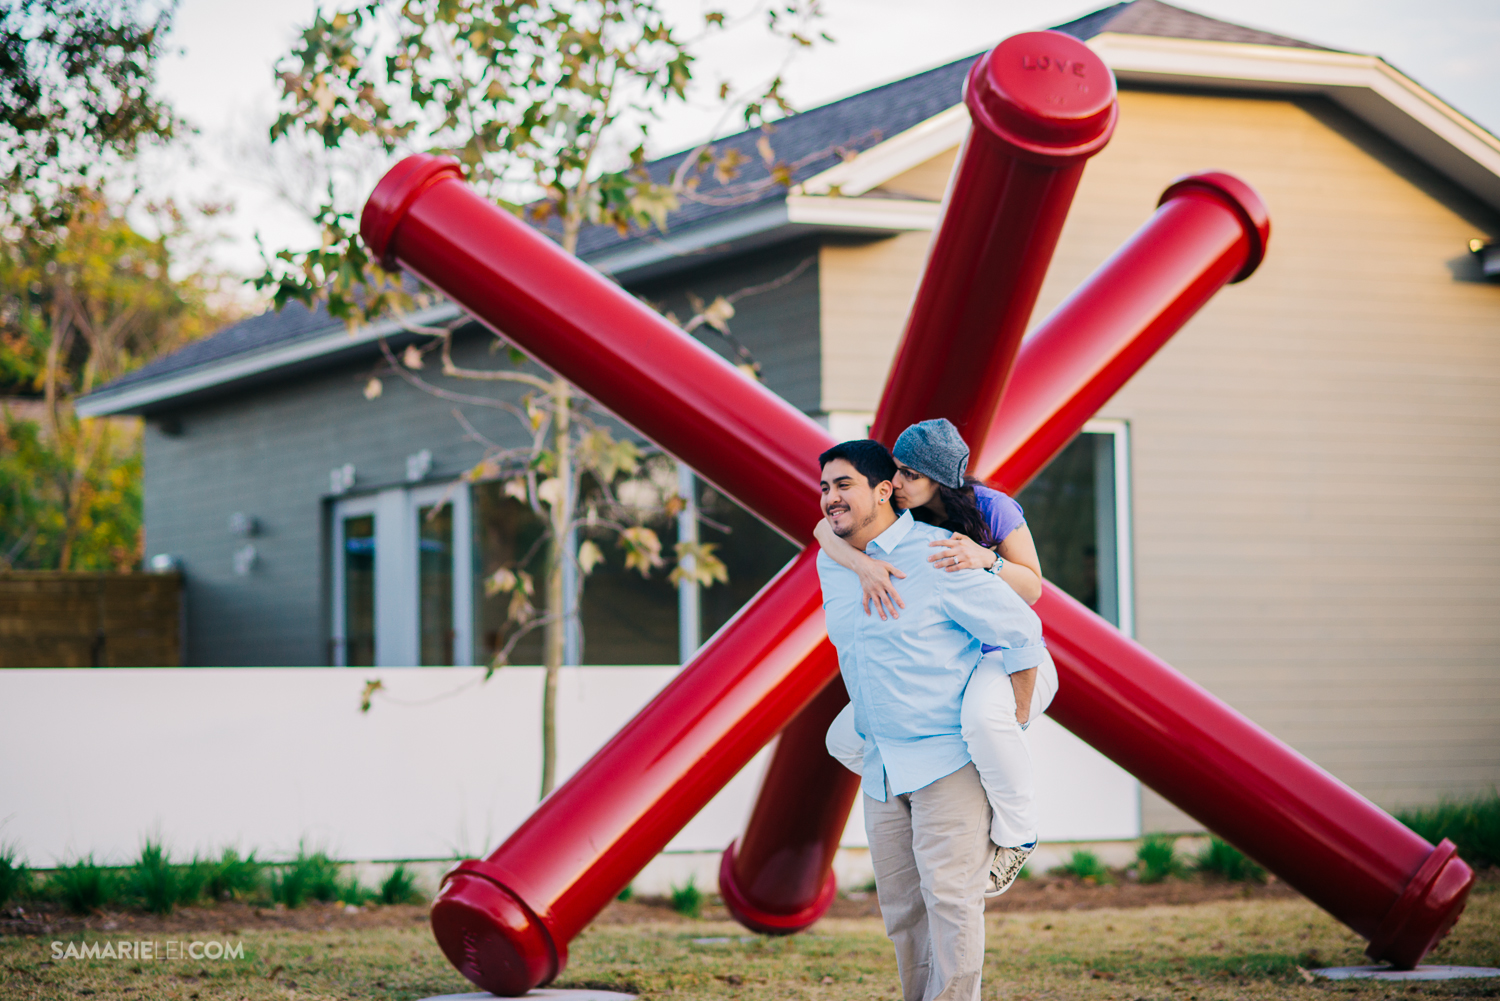 Menil park_Houston_TX_Engagement_lifestyle-10.jpg